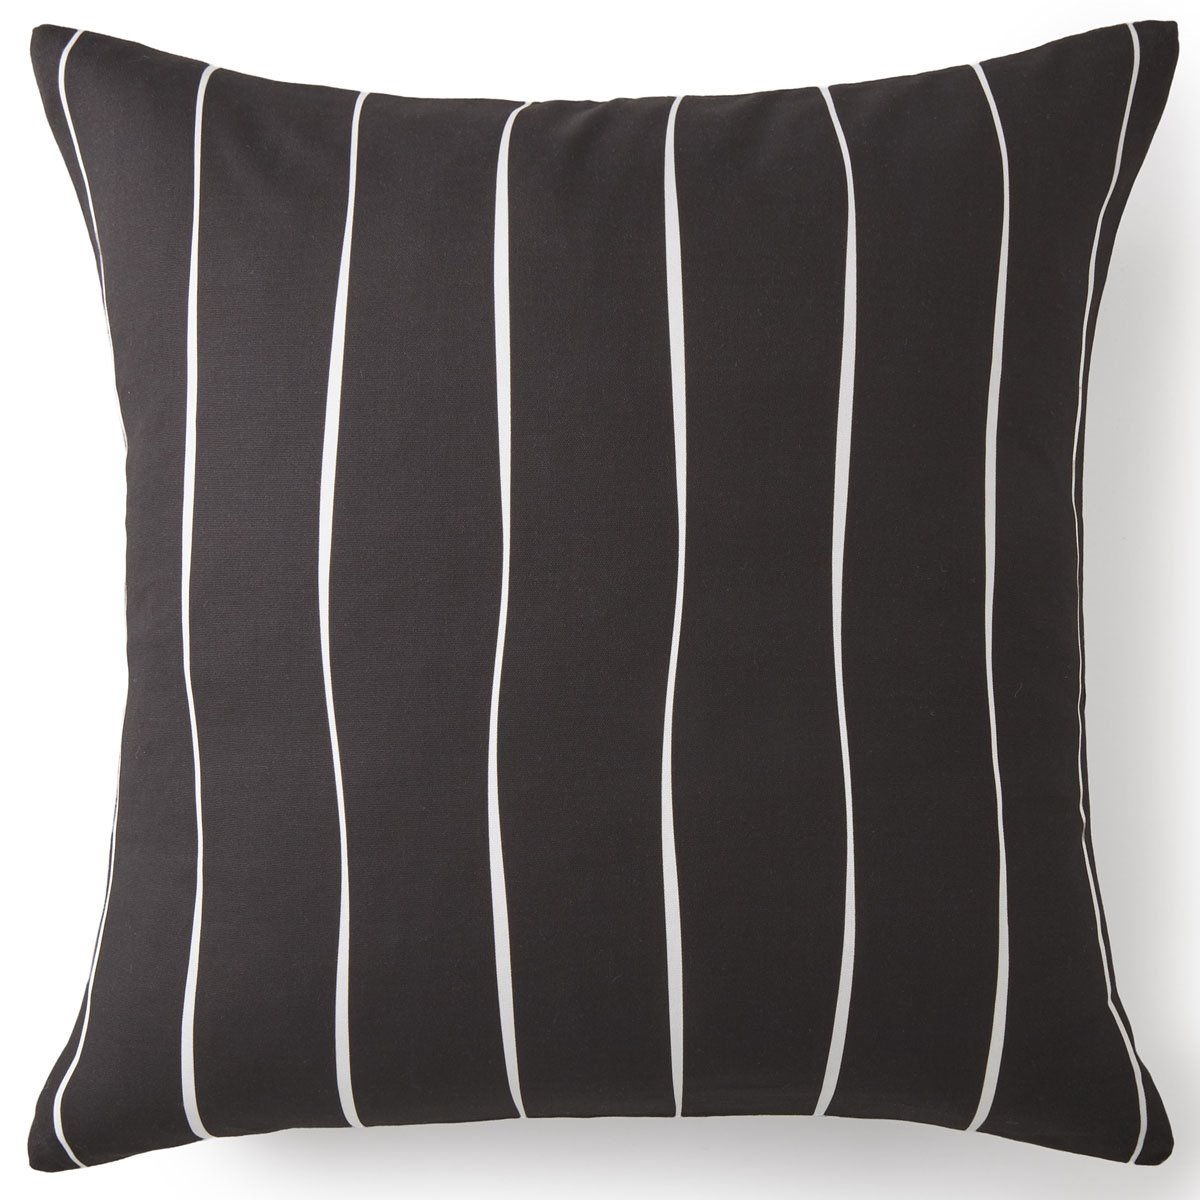 Toile Back In Black Euro Sham - Black & White Stripe